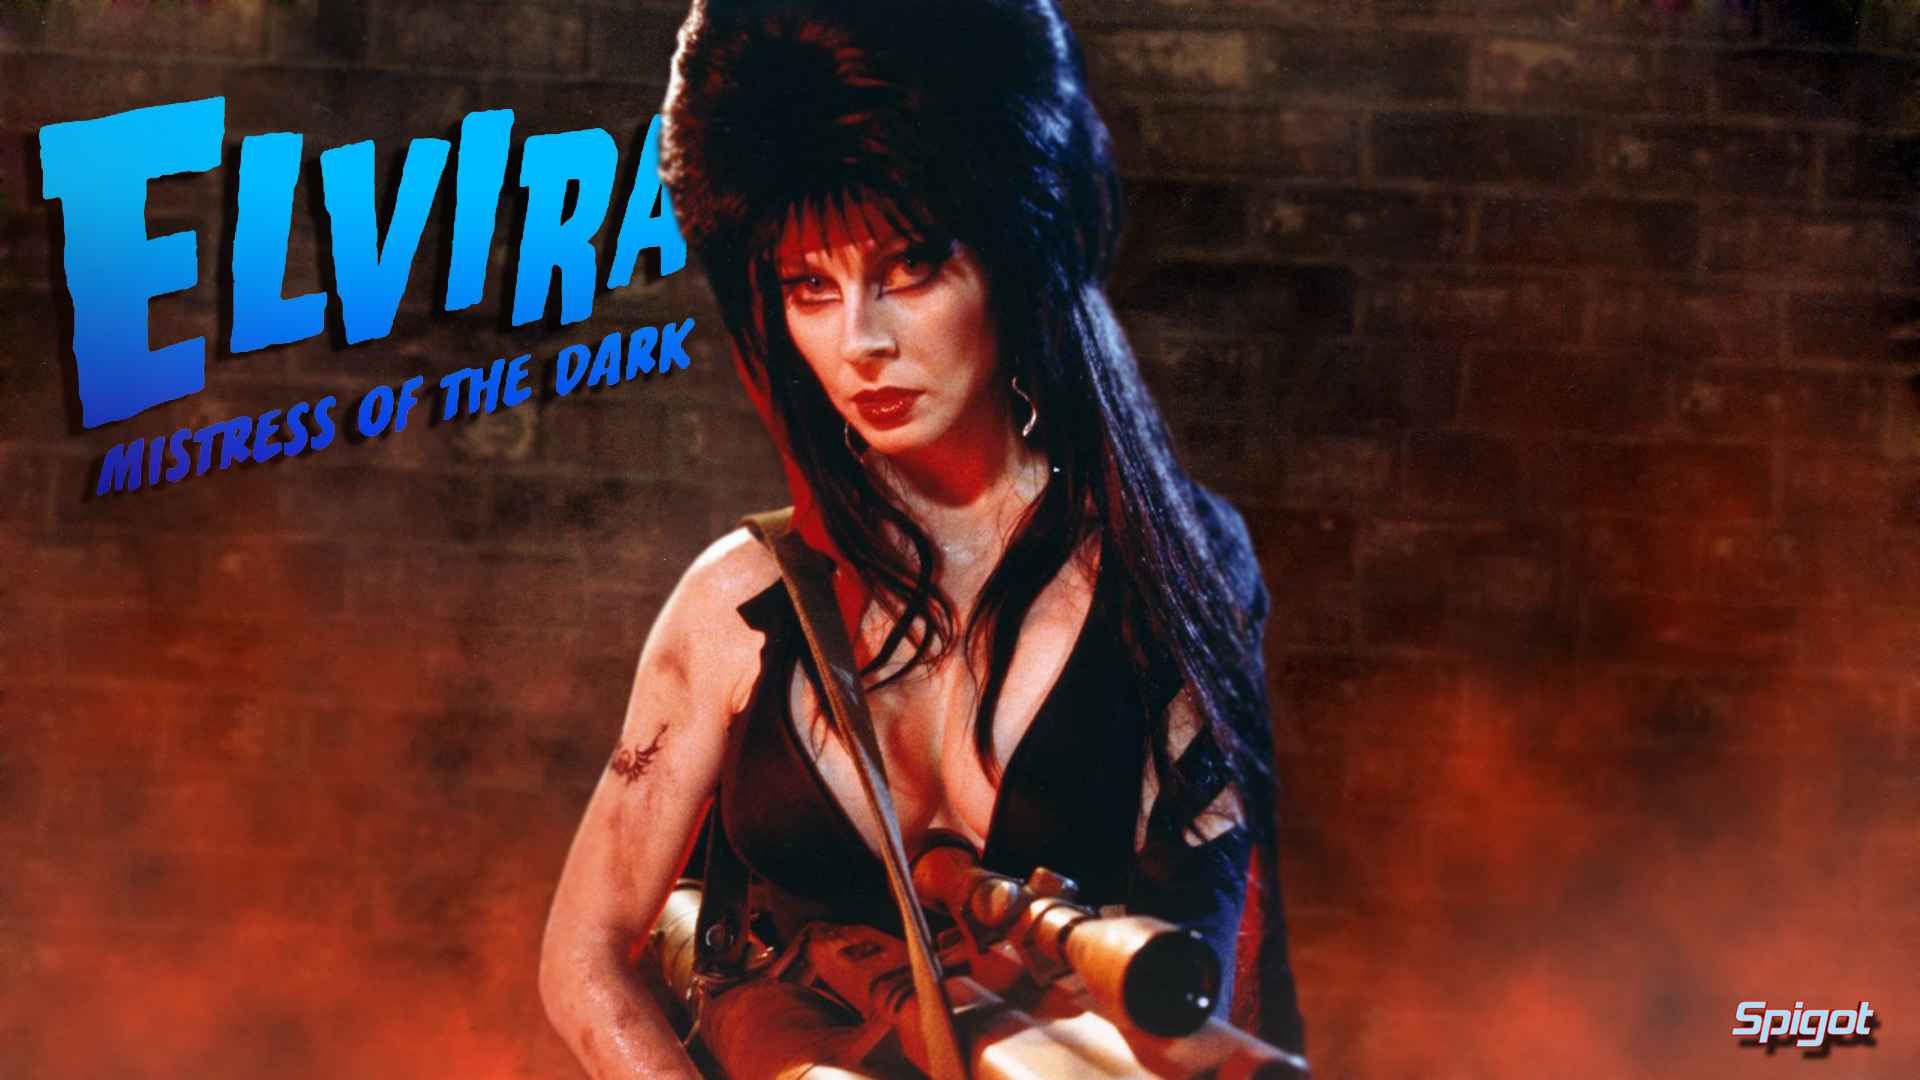 Elvira Mistress Of The Dark Wallpaper   Viewing Gallery 1920x1080